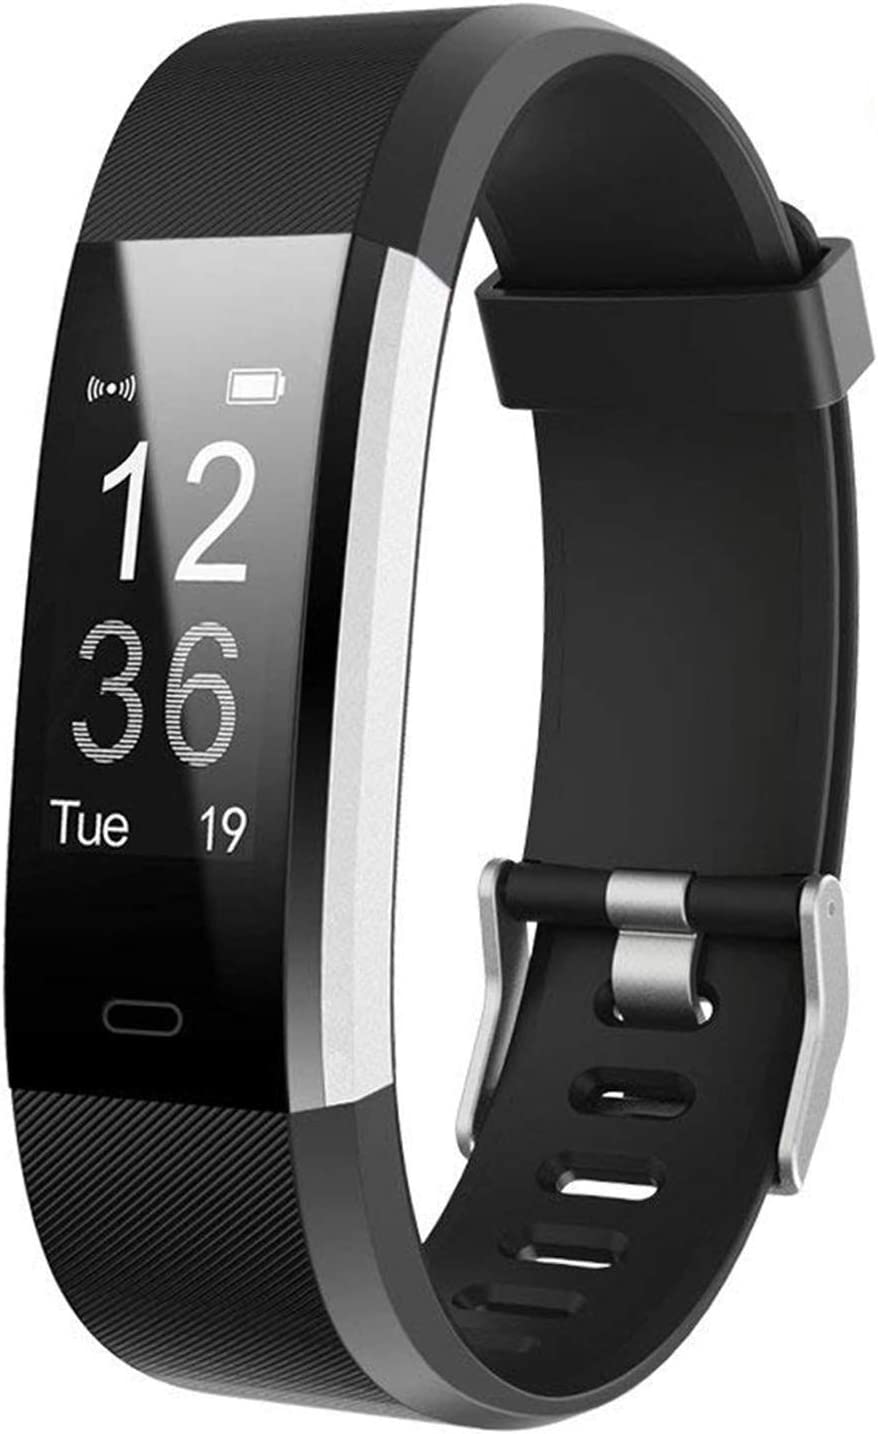 Lintelek Fitness Tracker with Heart Rate Monitor, Activity Tracker with Connected GPS, IP67 Waterproof Smart Fitness Band with Step Counter, Calorie Counter, Pedometer for Kids Women and Men : Sports & Outdoors